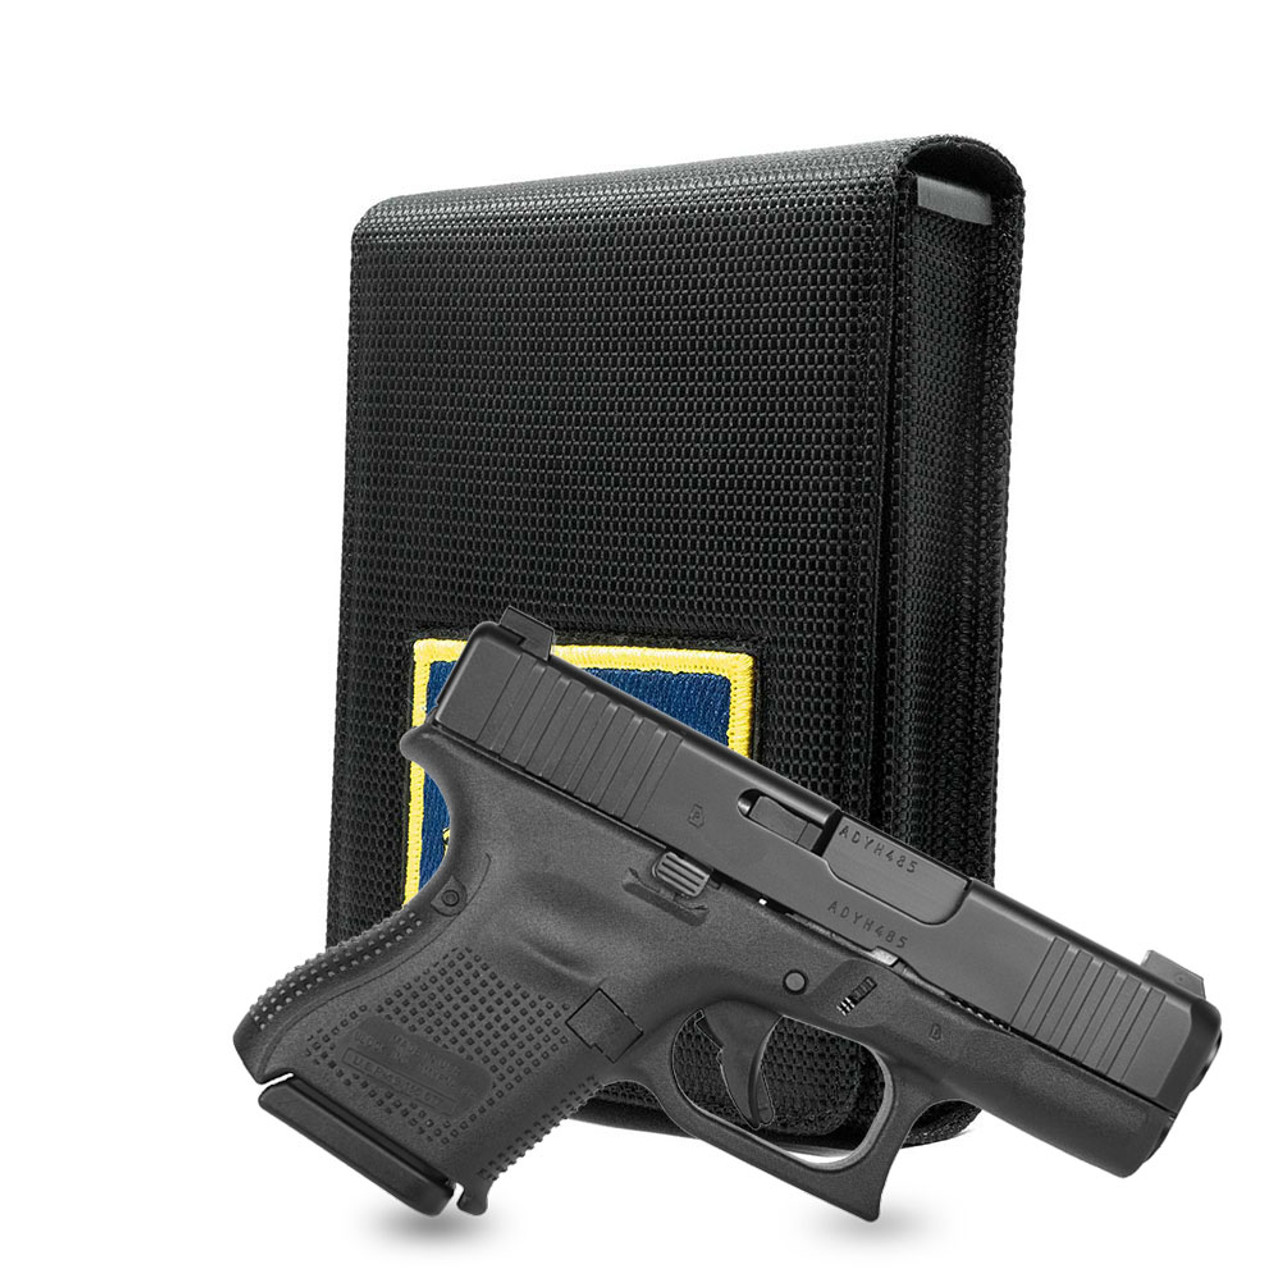 Glock 26 Navy Tactical Patch Holster